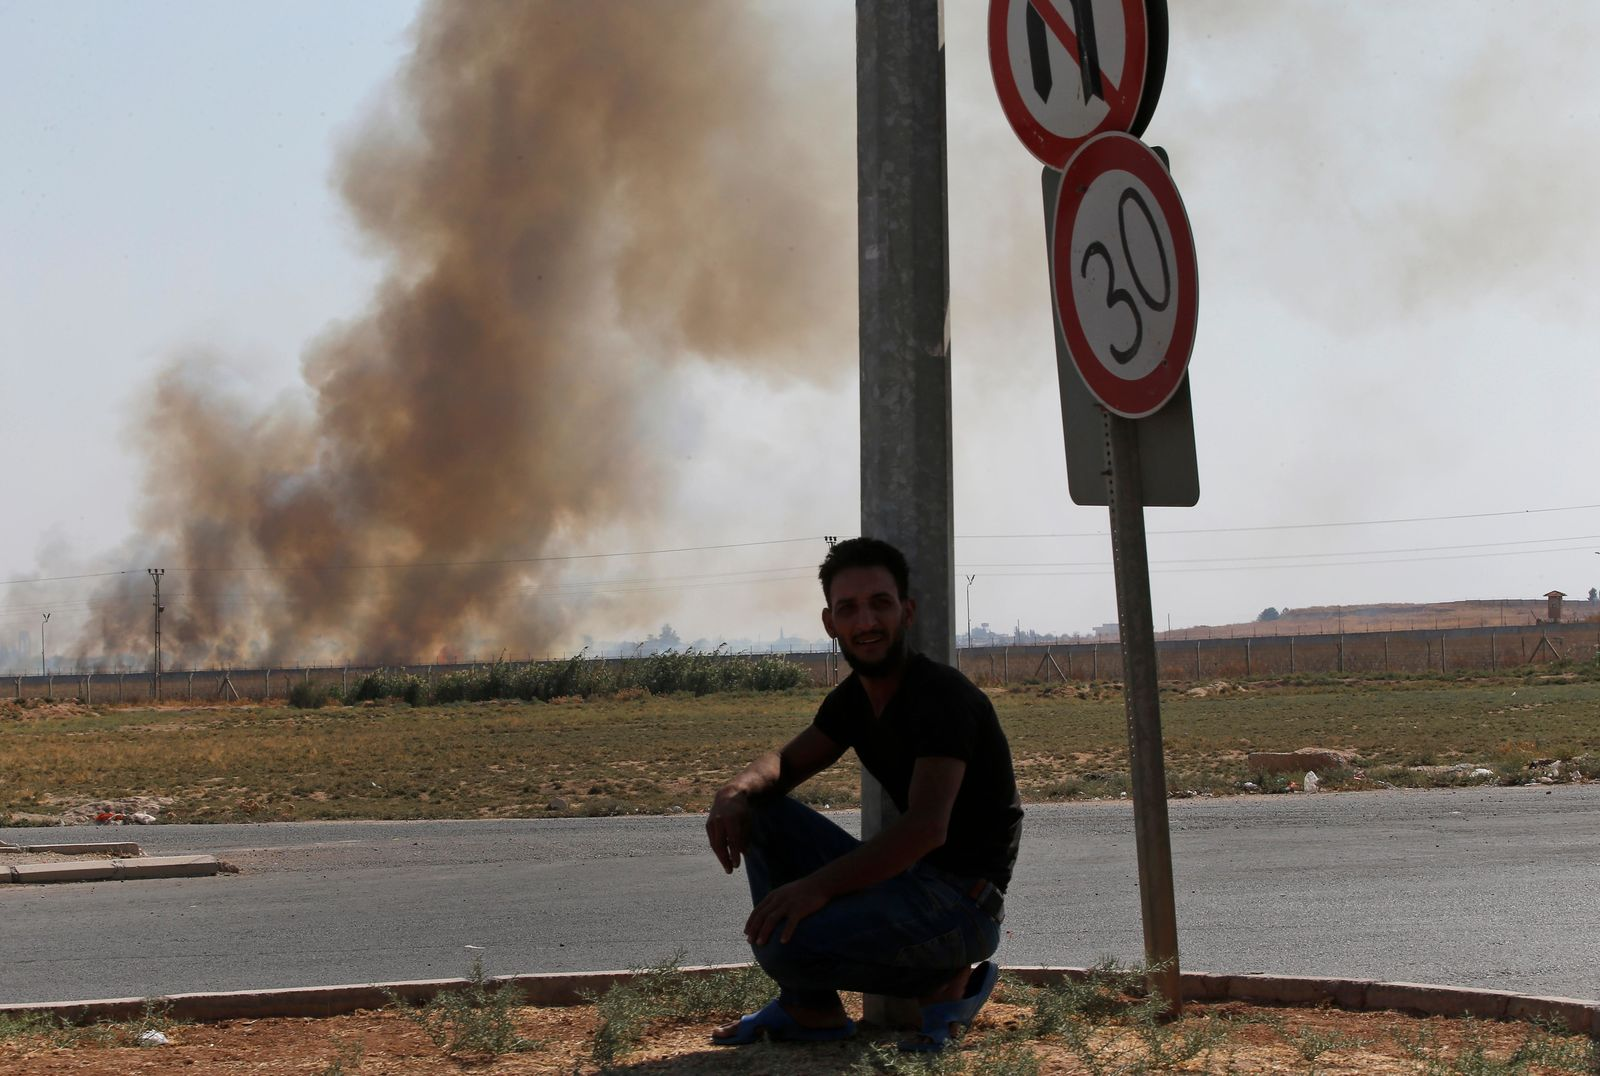 A man watches from Akcakale, Sanliurfa province, southeastern Turkey, as smoke billows from targets in Tel Abyad, Syria, during bombardment by Turkish forces, Sunday, Oct. 13, 2019. (AP Photo/Lefteris Pitarakis)